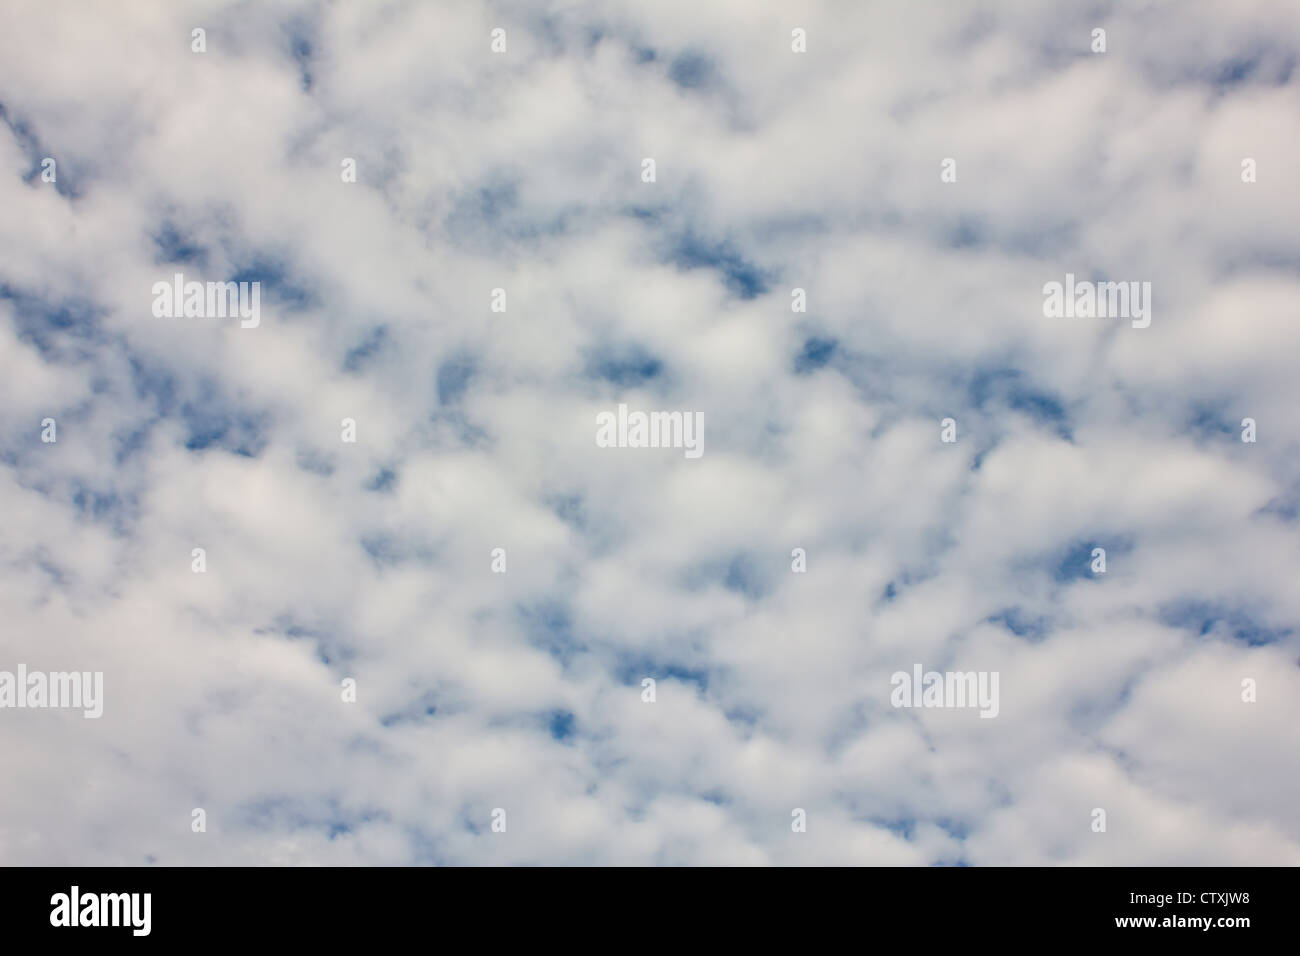 Stock Photo - Cloud on the blue sky texture background. - Stock Image